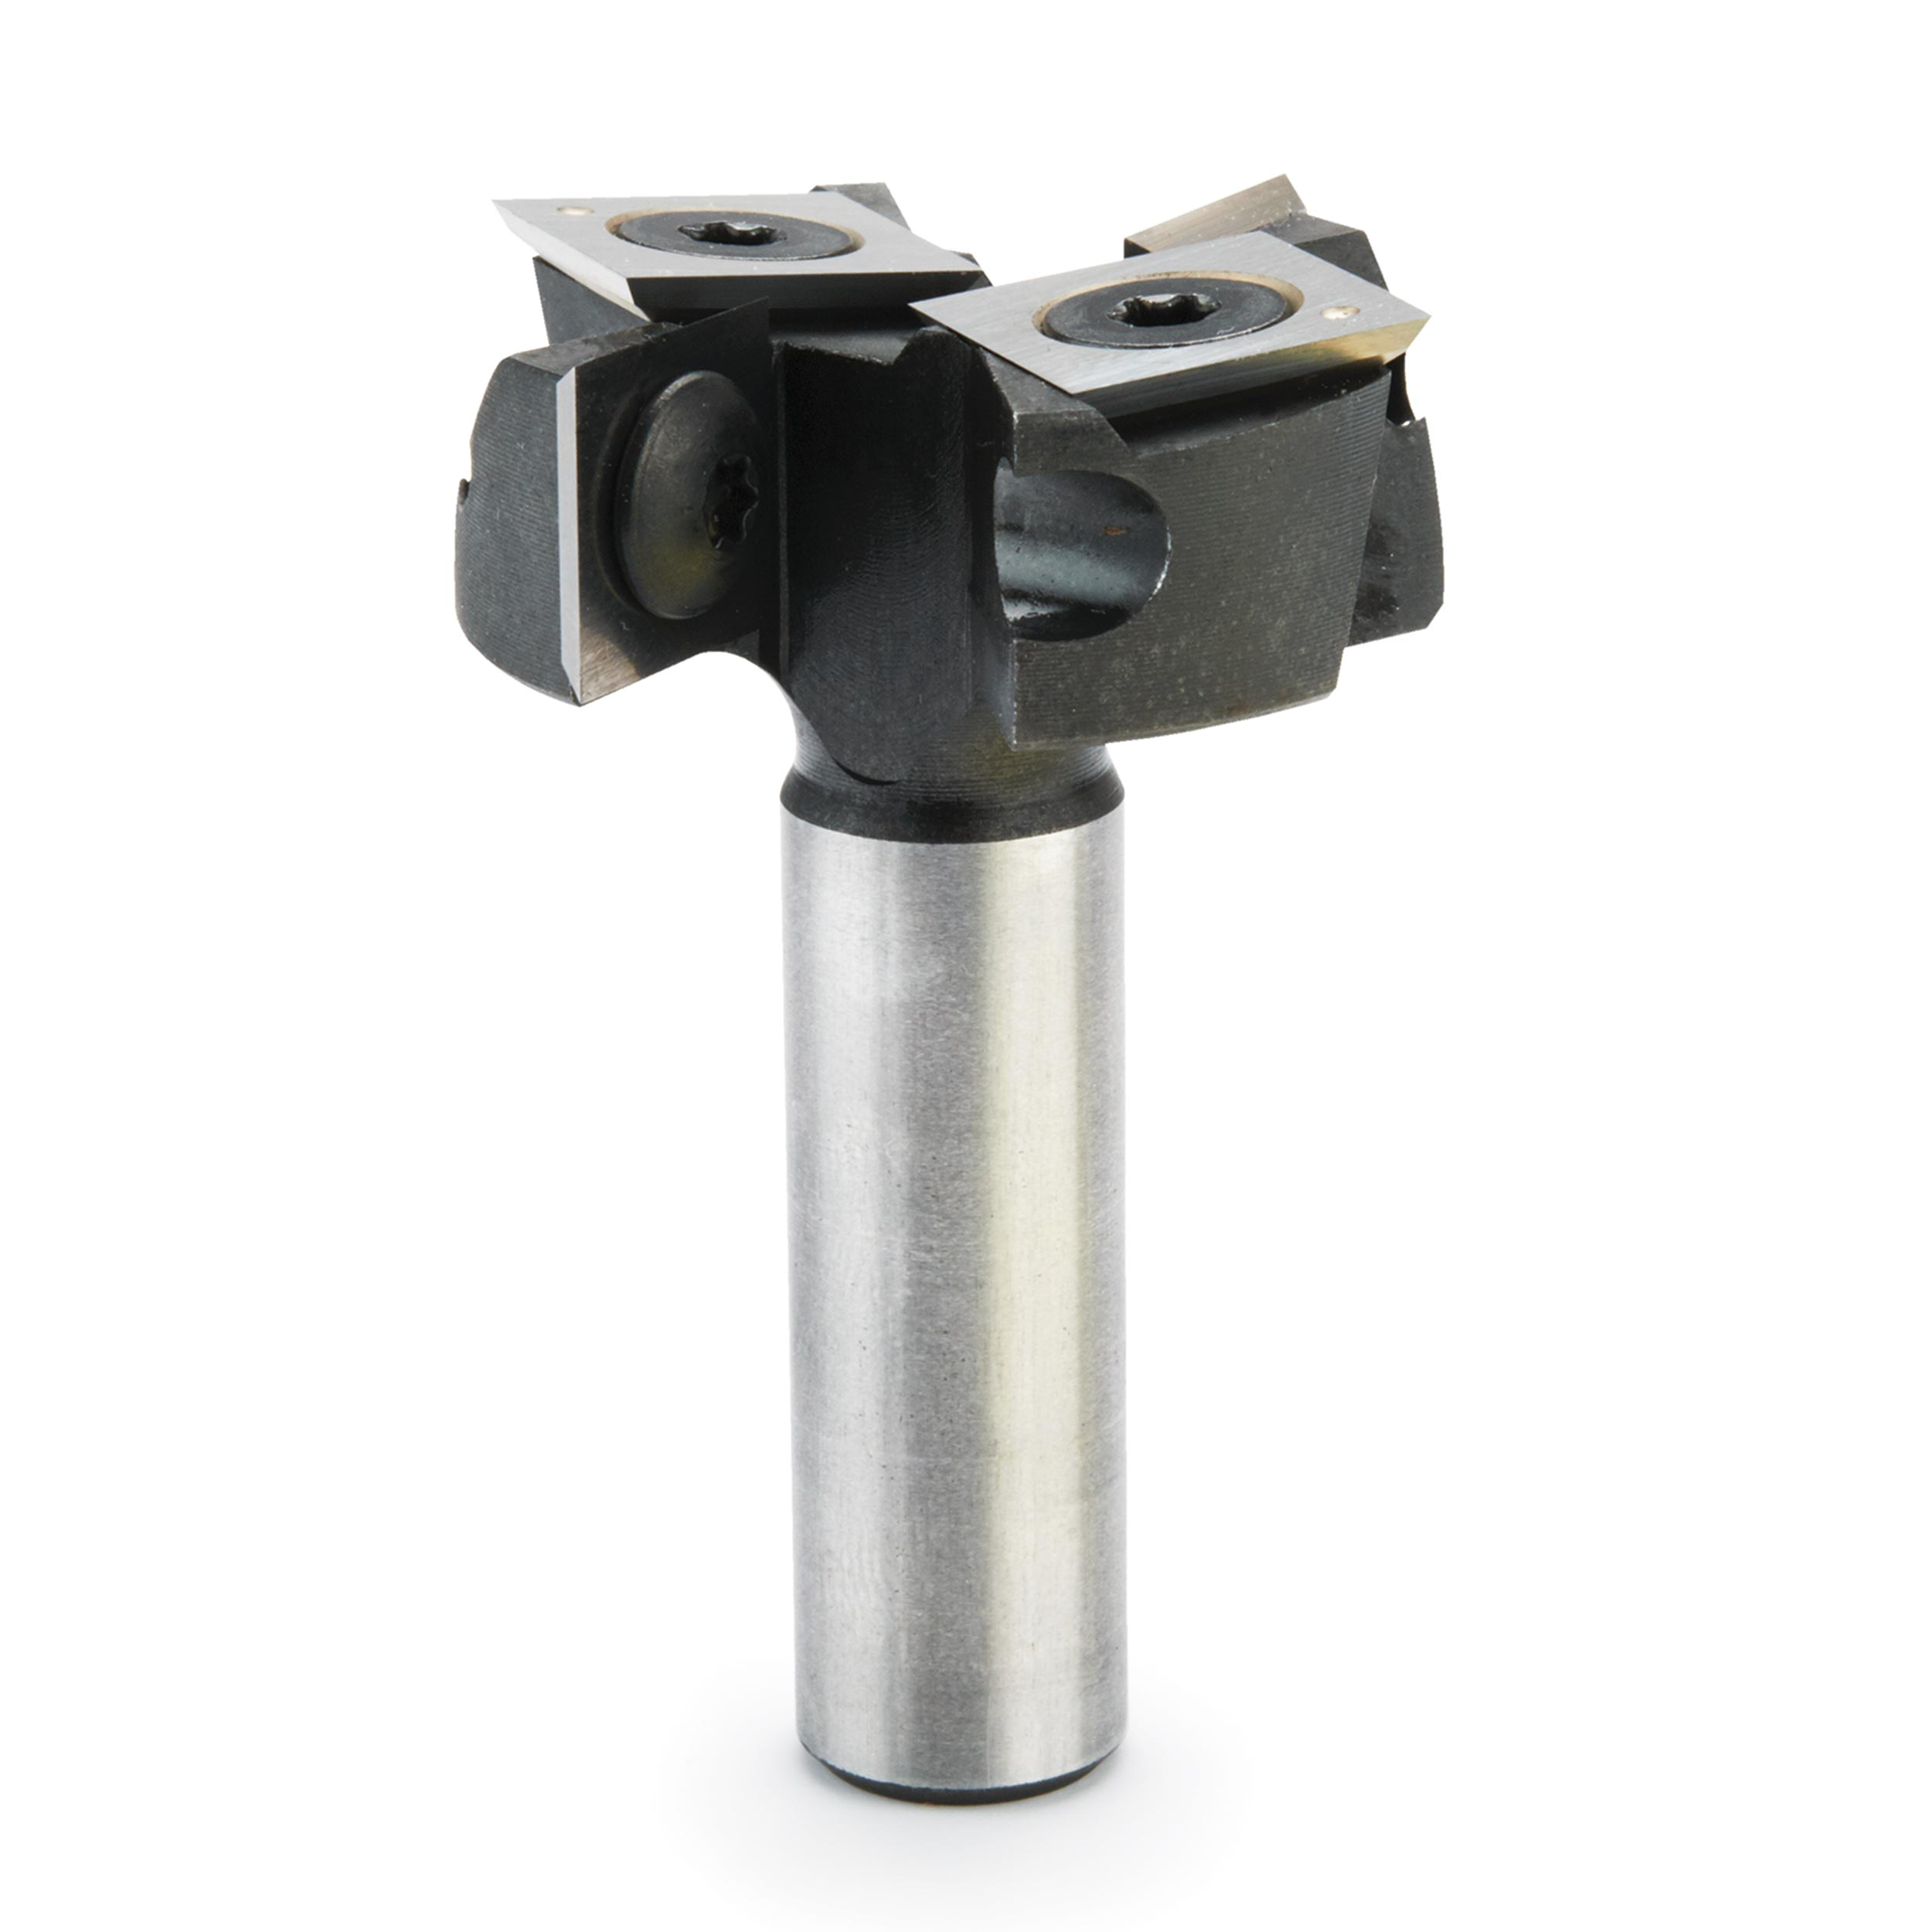 TM1465 Spoilboard Surfacing and Rabbeting Router Bit, 1/2